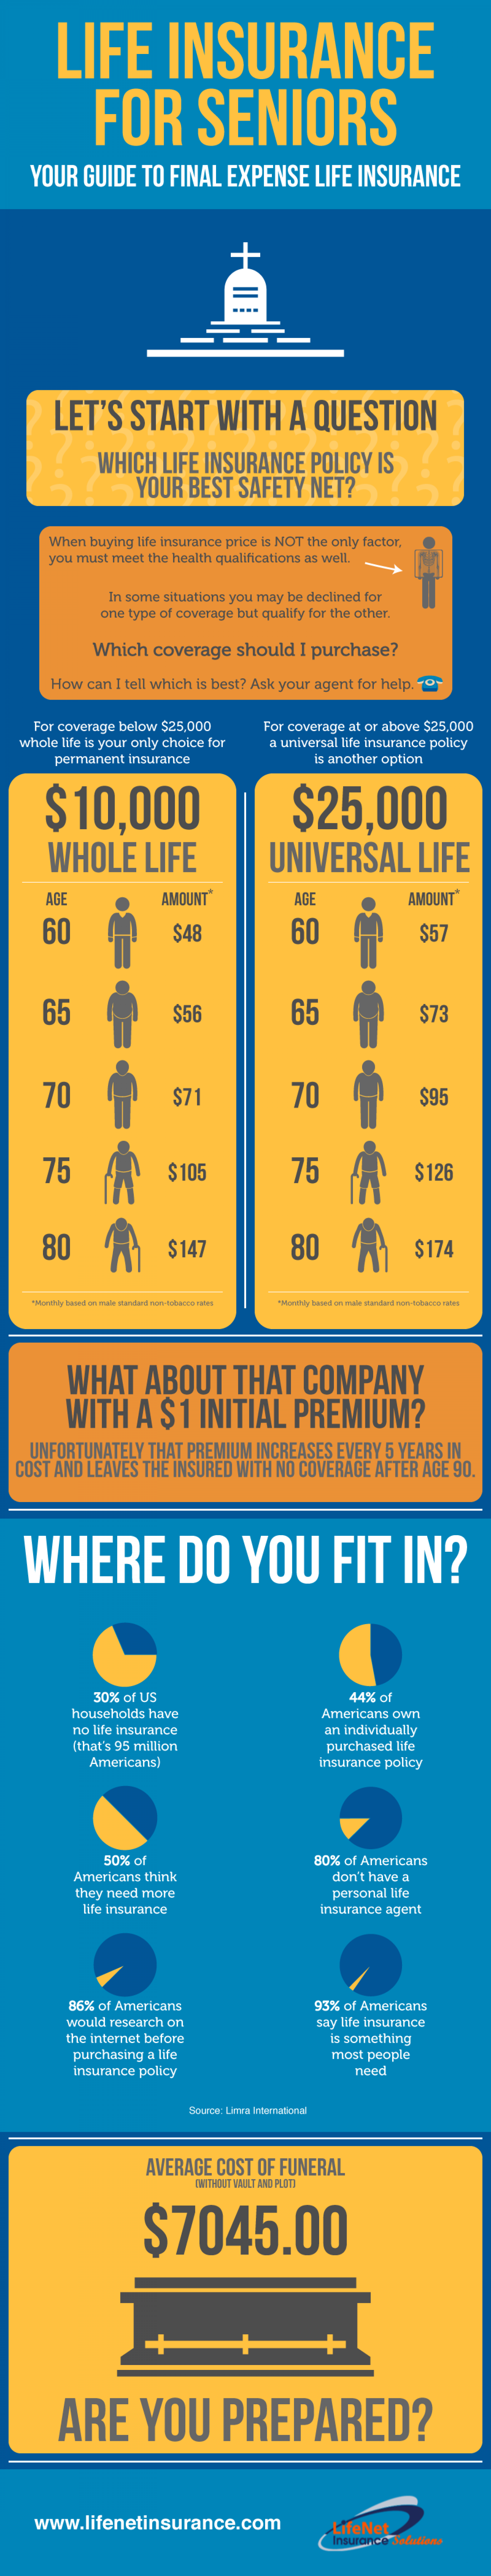 Life Insurance For Seniors Infographic